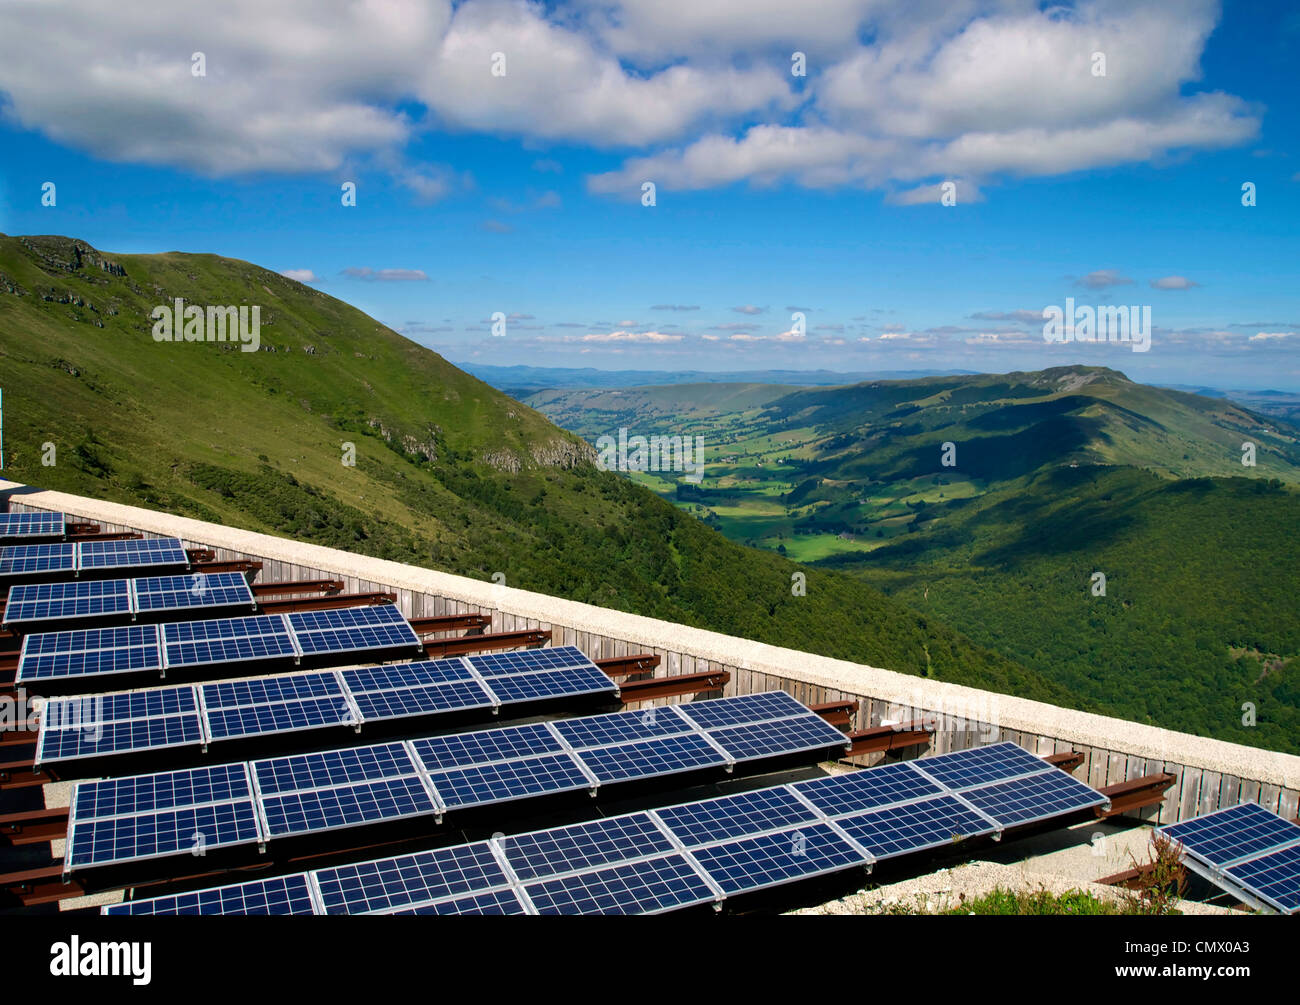 Solar farm with solar panels array in rural Cantal, Auvergne, France, Europe - Stock Image